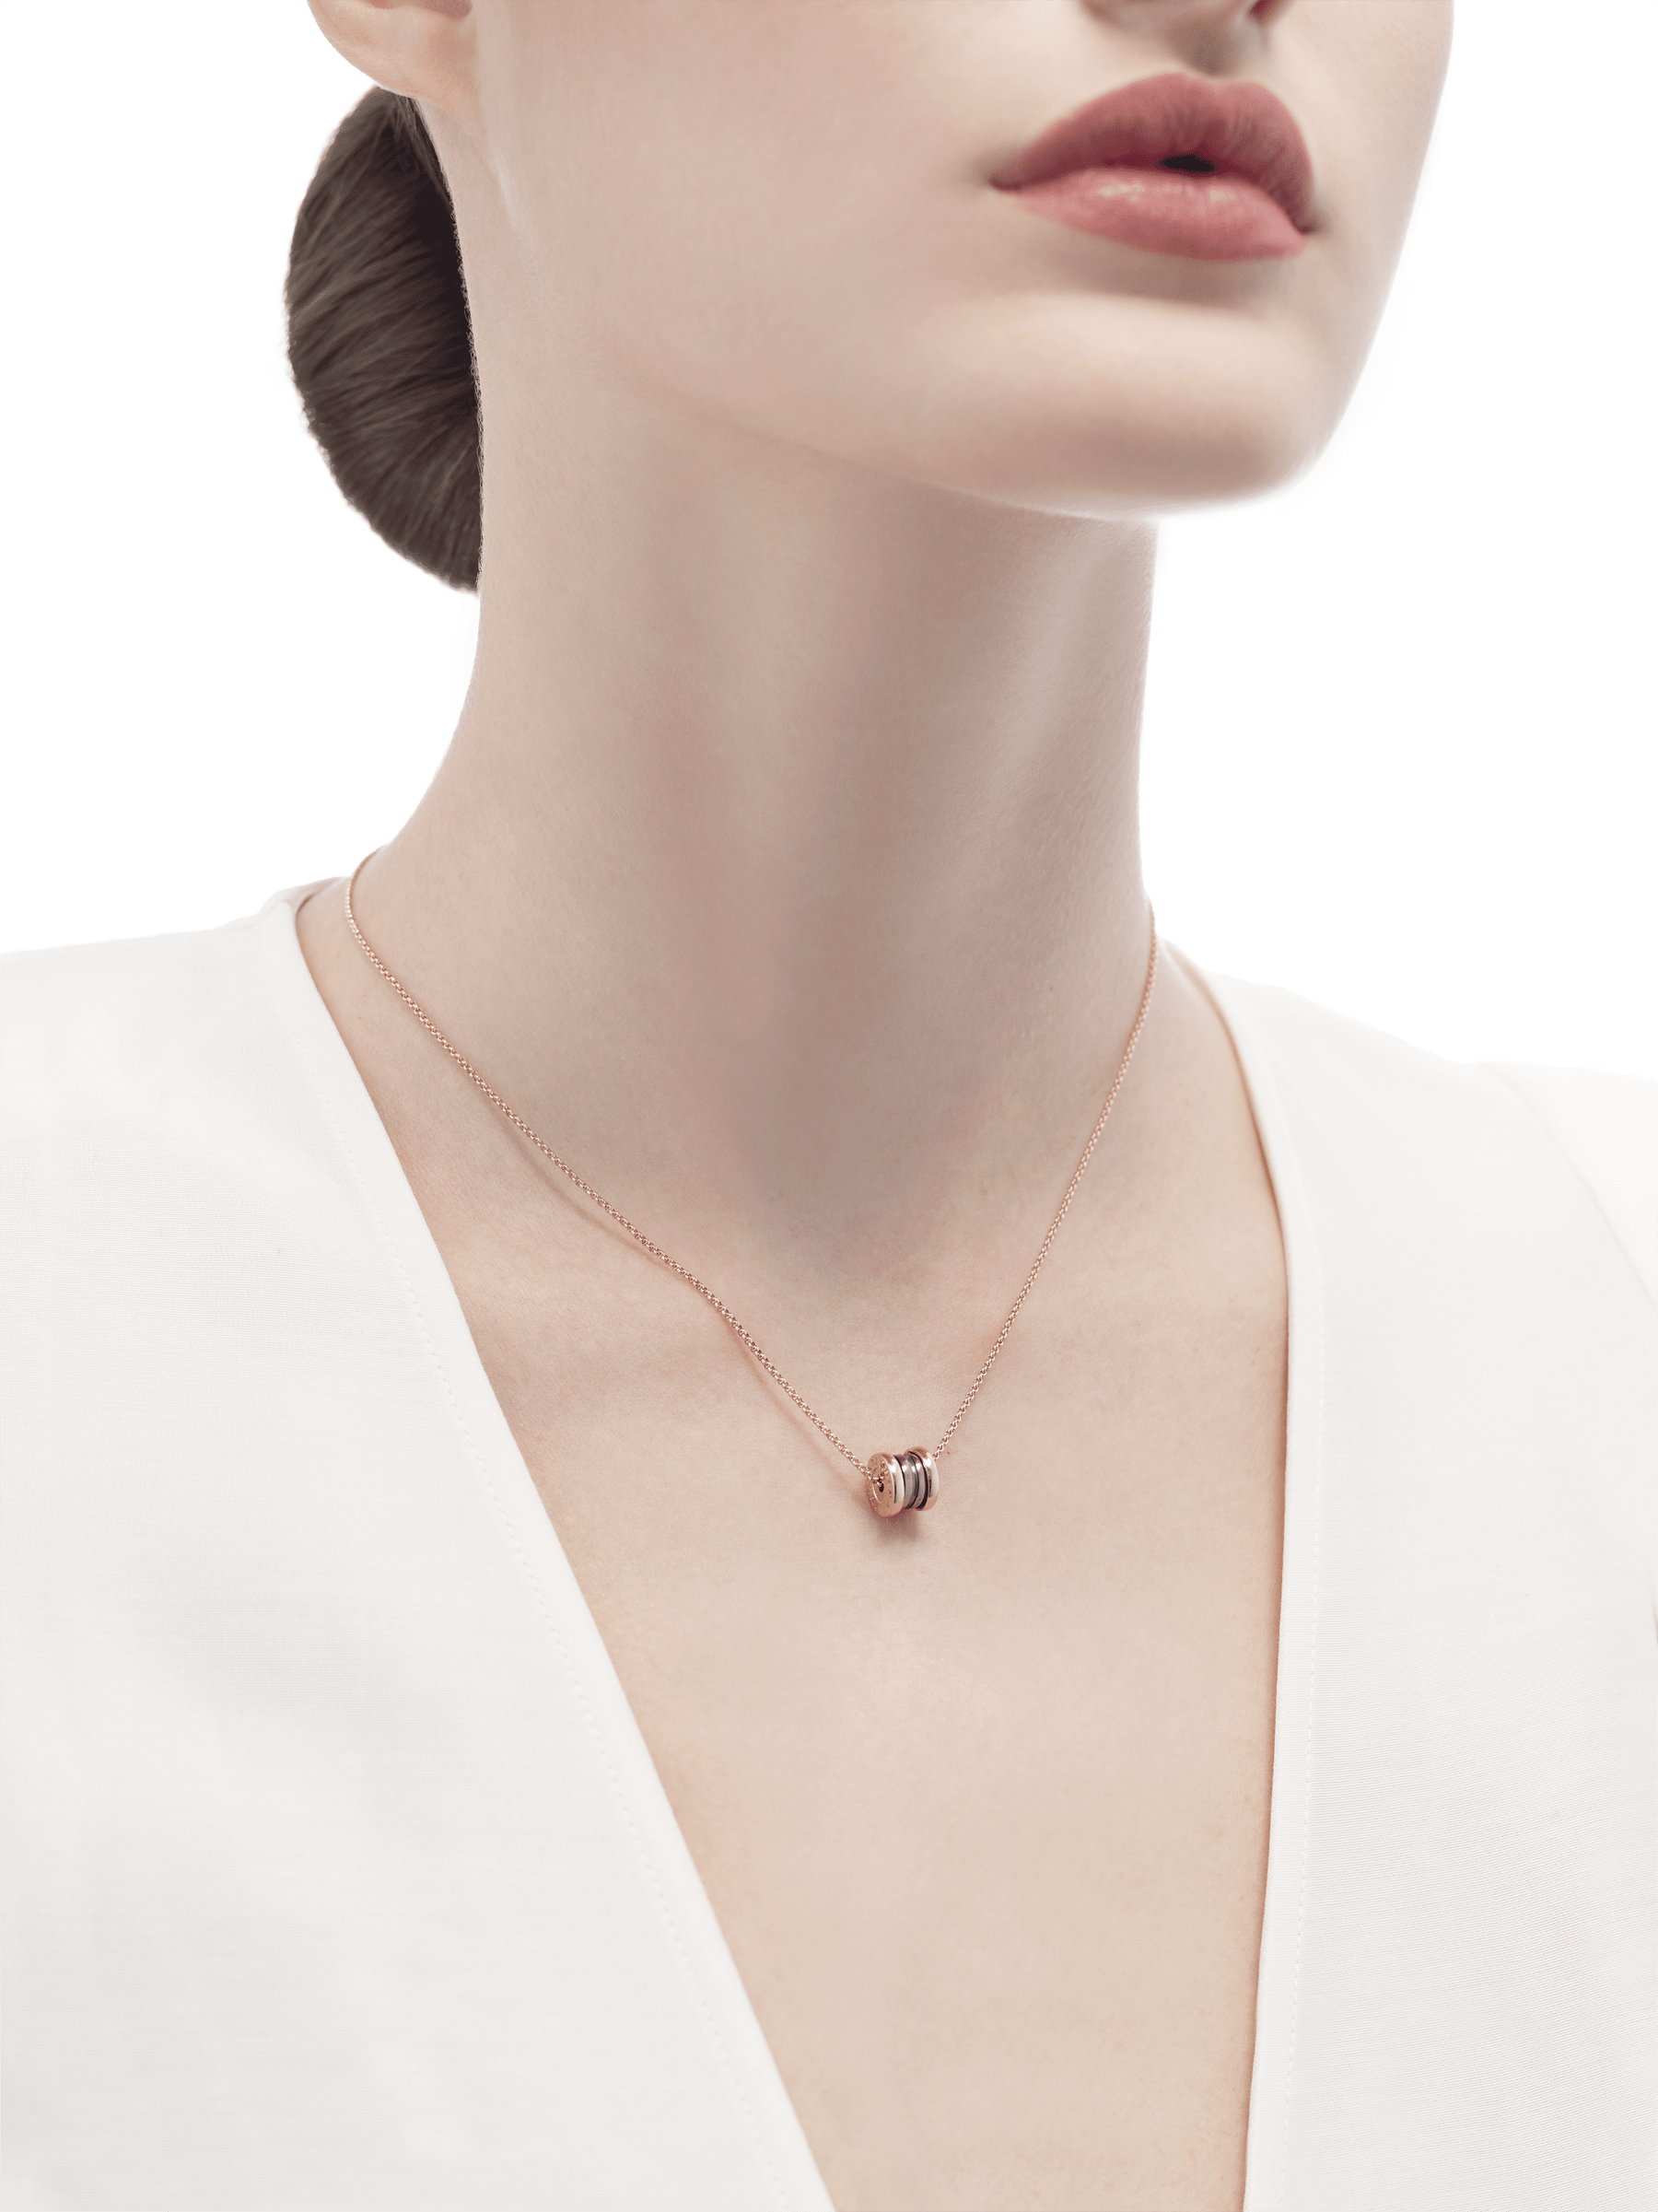 B.zero1 necklace with 18 kt rose gold chain and pendant in 18 kt rose gold and cermet. 358379 image 5